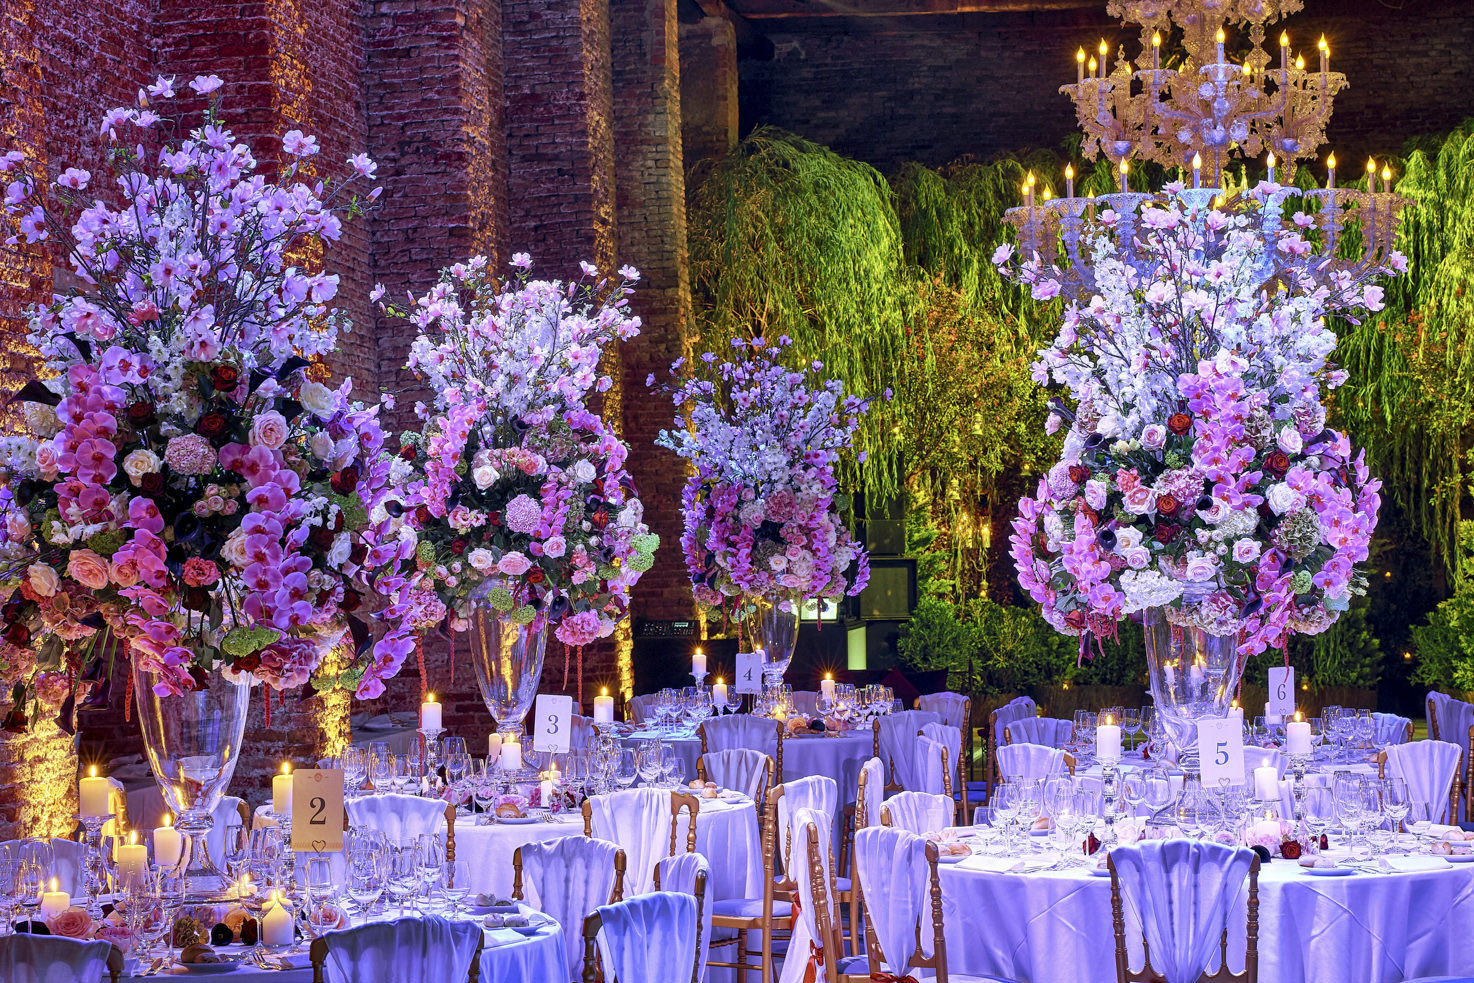 Floral decorations for wedding banquet